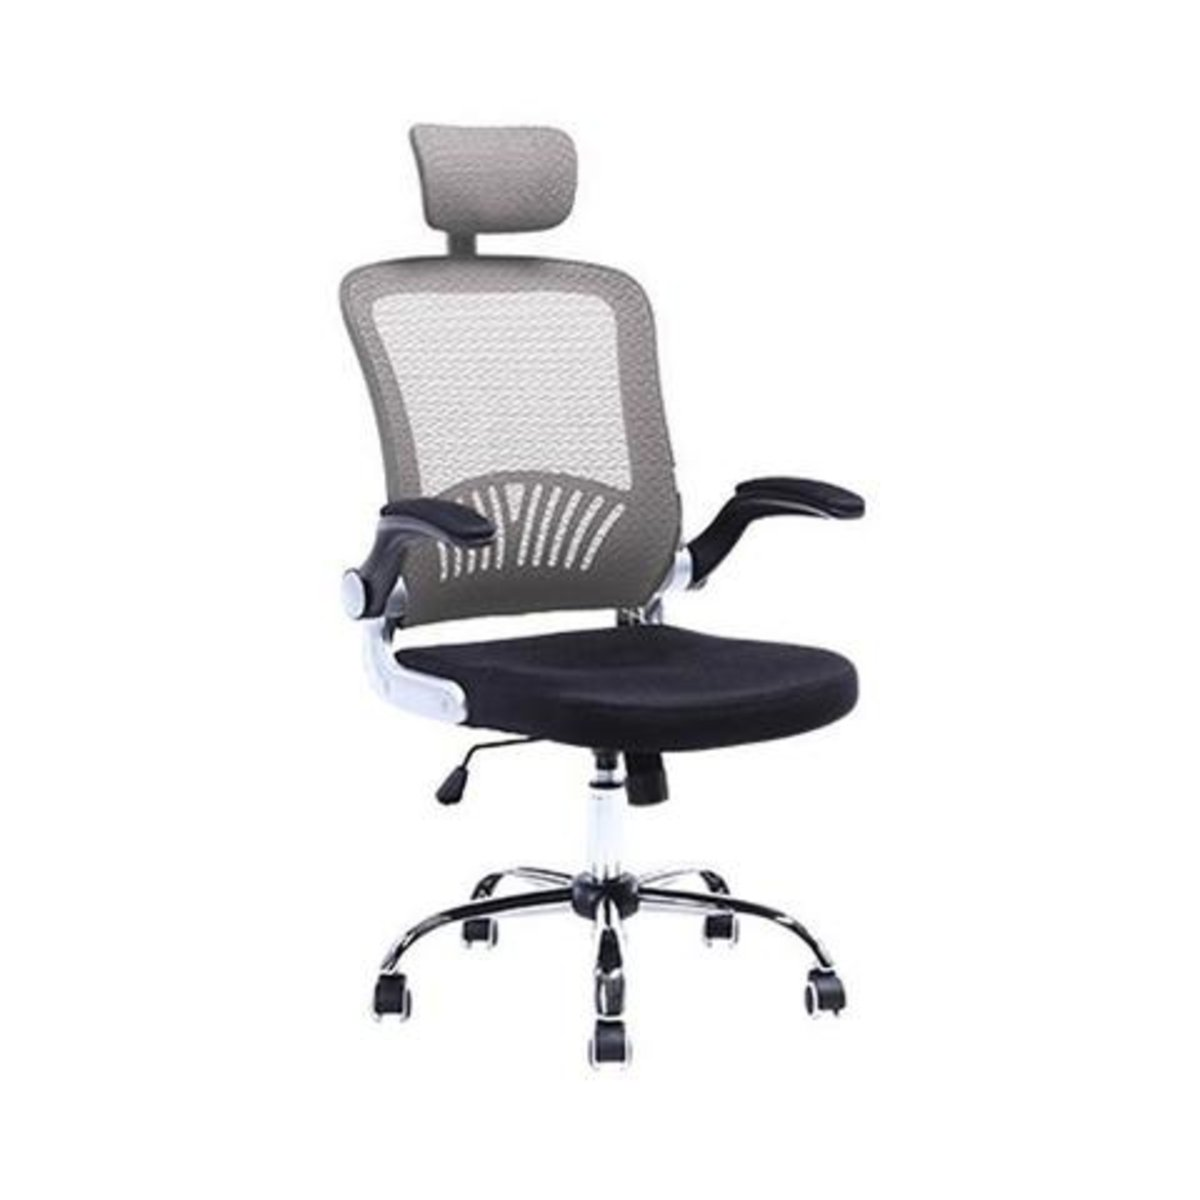 disassemble office chair. Suchprice® D53 Office Chair Gray (Disassemble) Disassemble